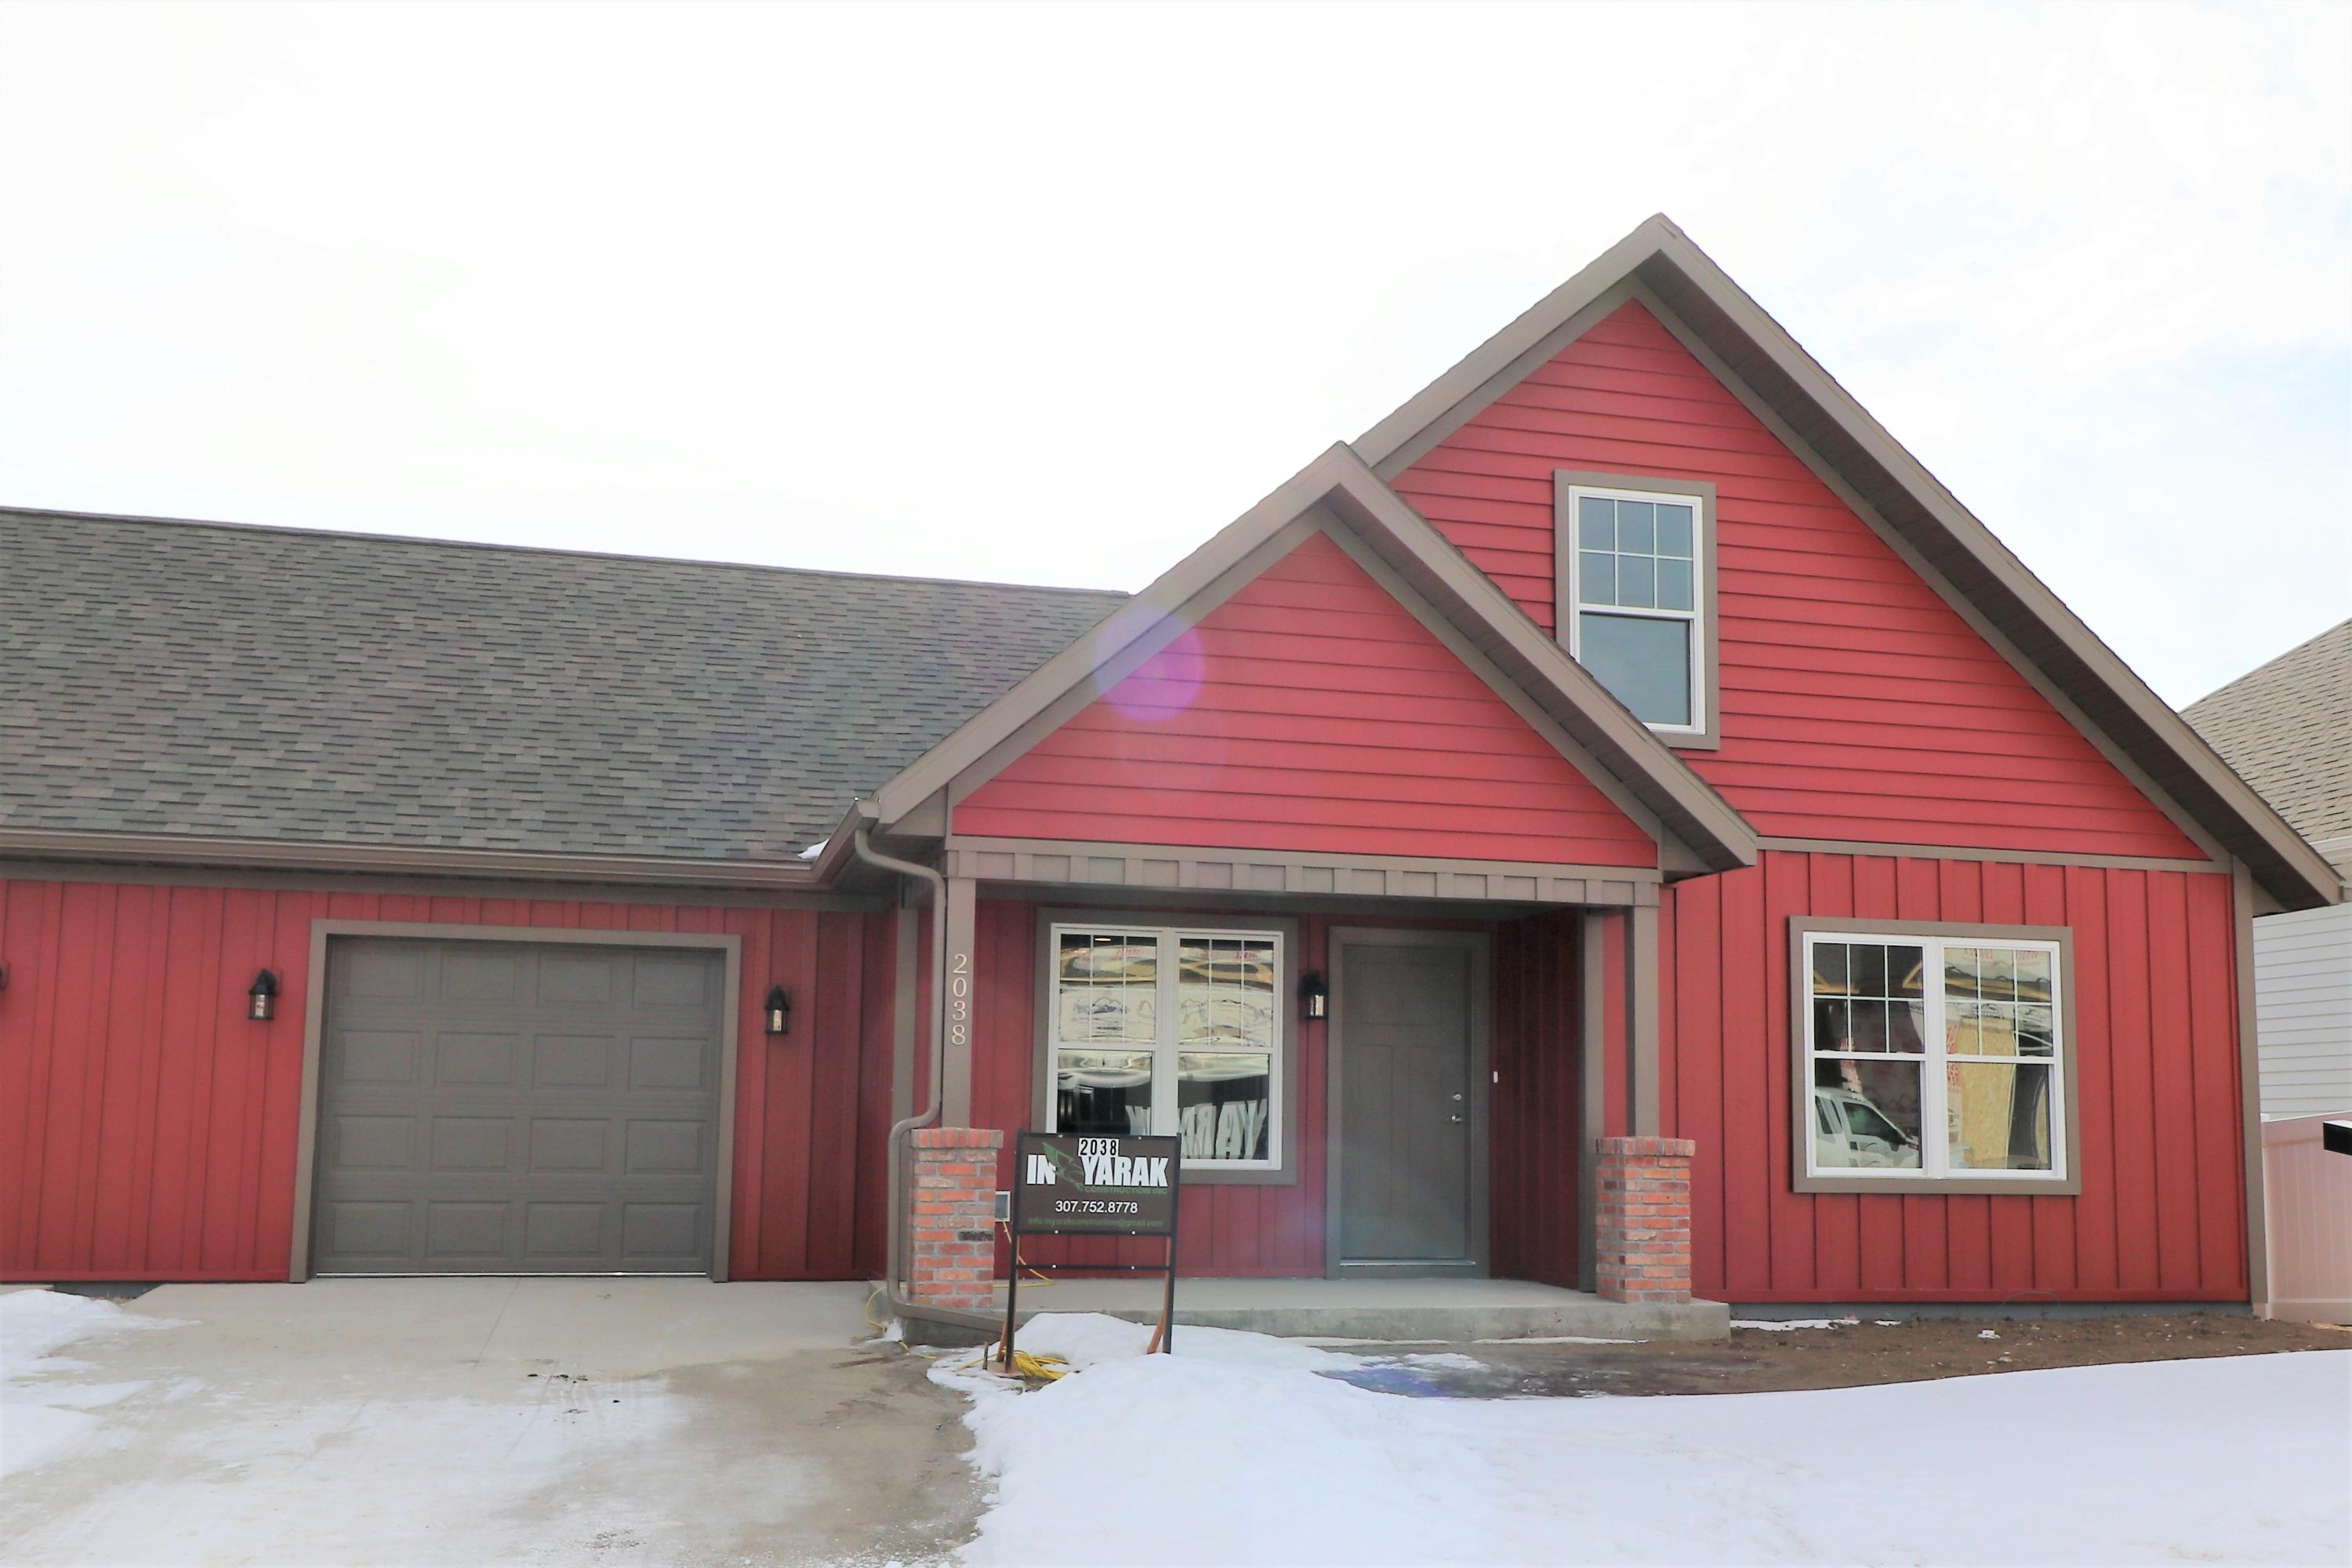 2038 Skyview West Drive, Sheridan, Wyoming 82801, 3 Bedrooms Bedrooms, ,2 BathroomsBathrooms,Residential,For Sale,Skyview West,18-1275